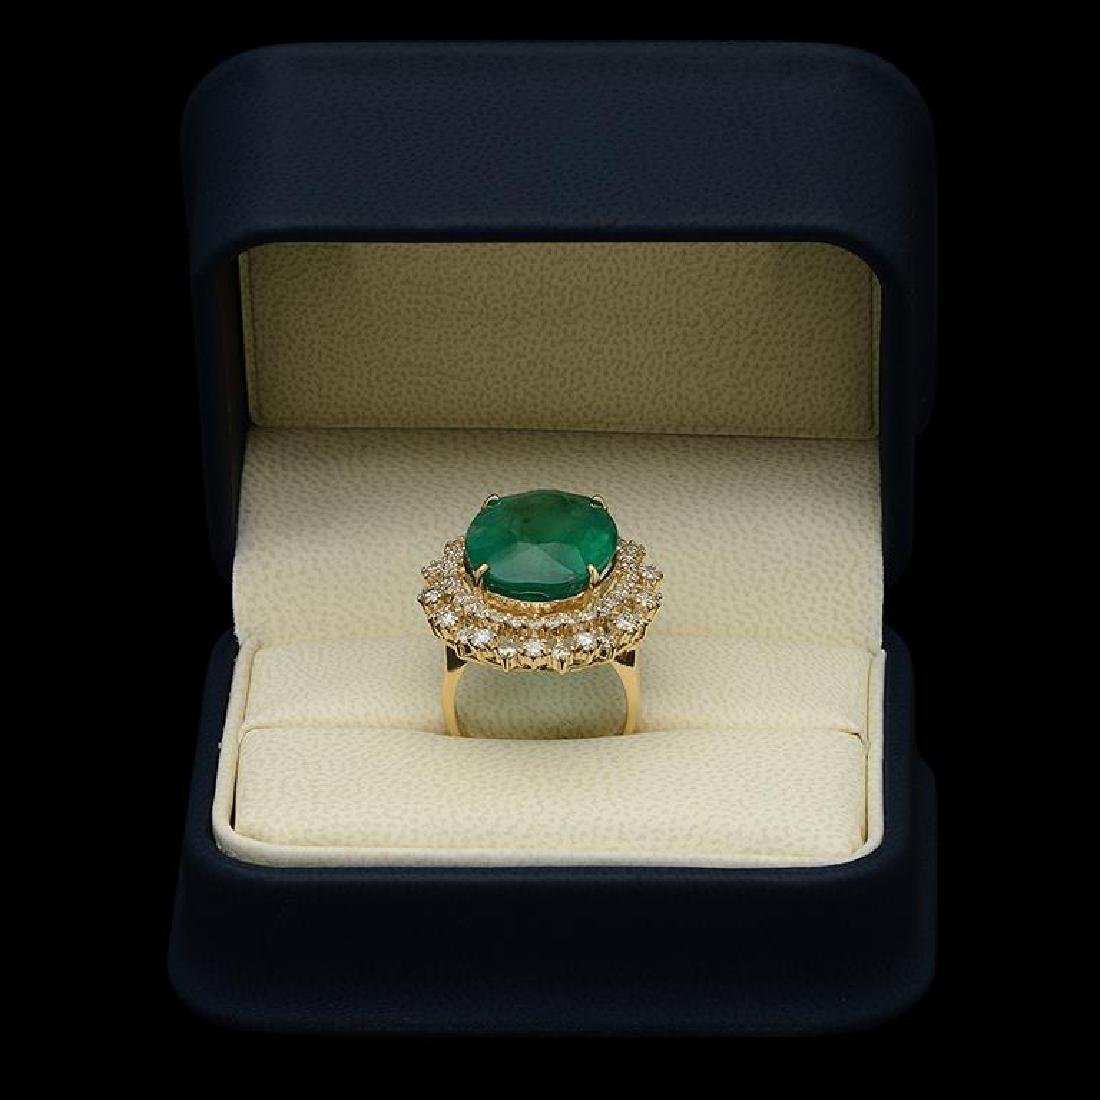 14K Gold 17.93ct Emerald 2.10ct Diamond Ring - 3